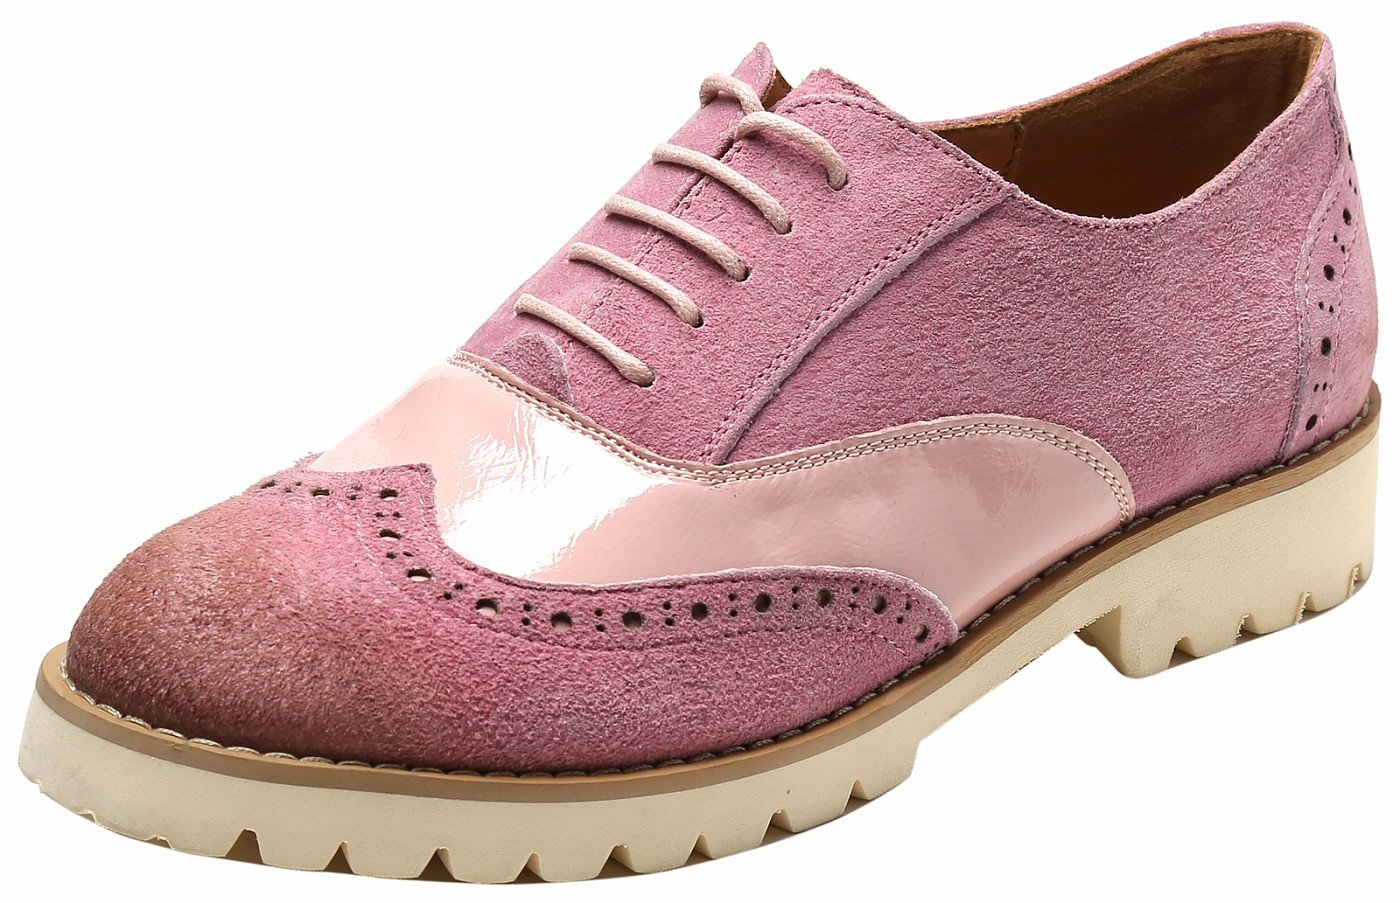 Ulite Womens Classic Perforated Suede Leather Lace-up Low Heel Oxfords, Comfortable Casual Walking Oxfords Pink8.5